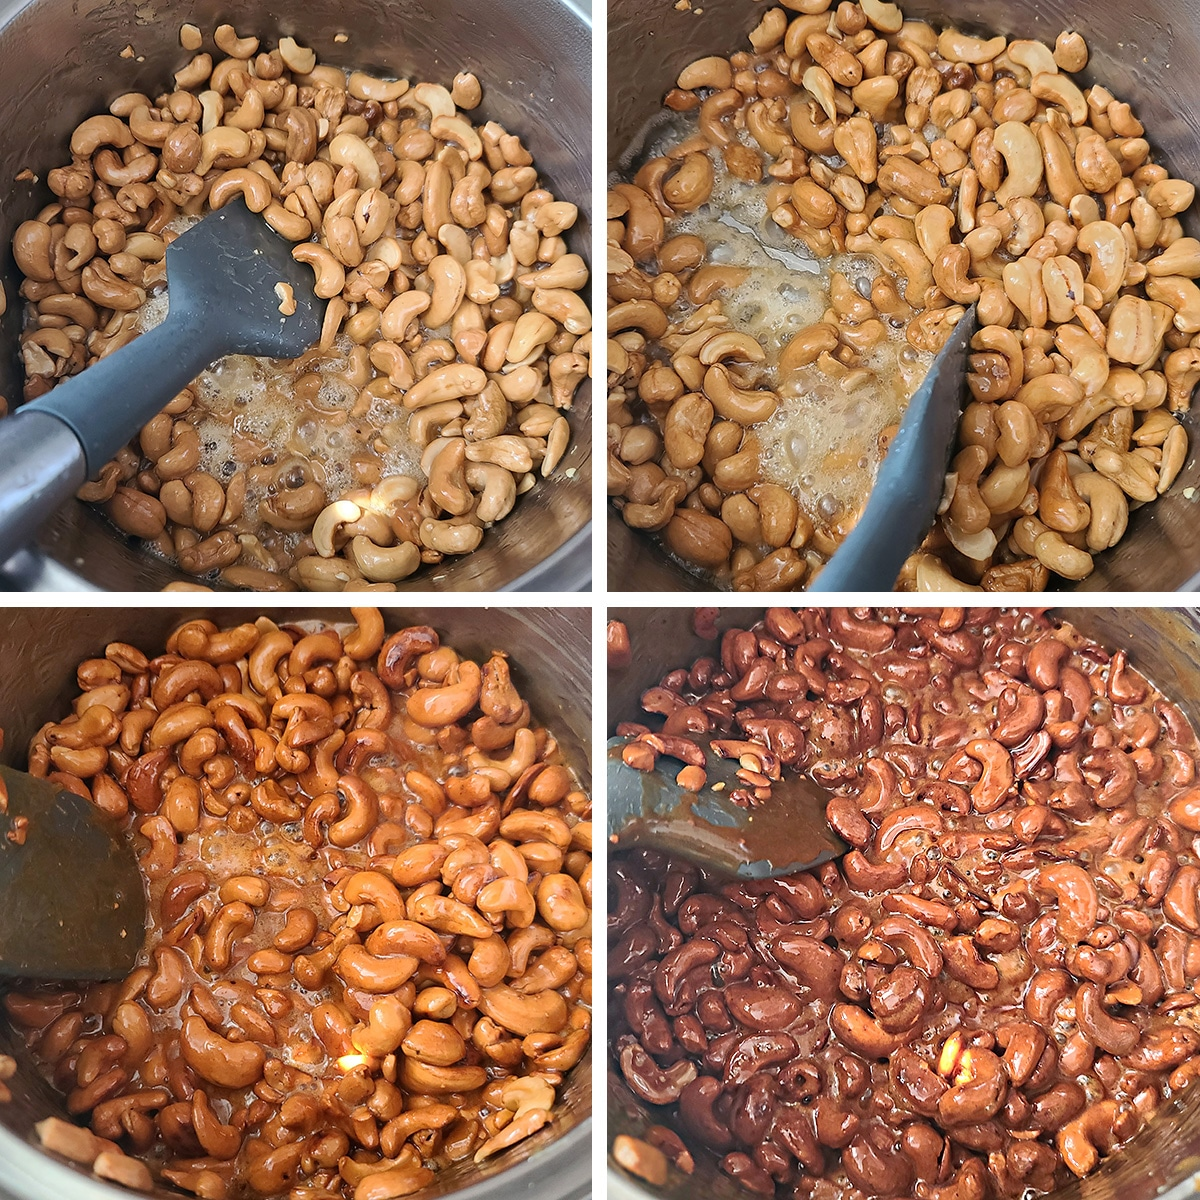 A 4 part compilation image showing the process of honey glazing cashews. They start out light coloured and with a lot of liquid, progress through a few darker shade, into a dark reddish caramel colour.